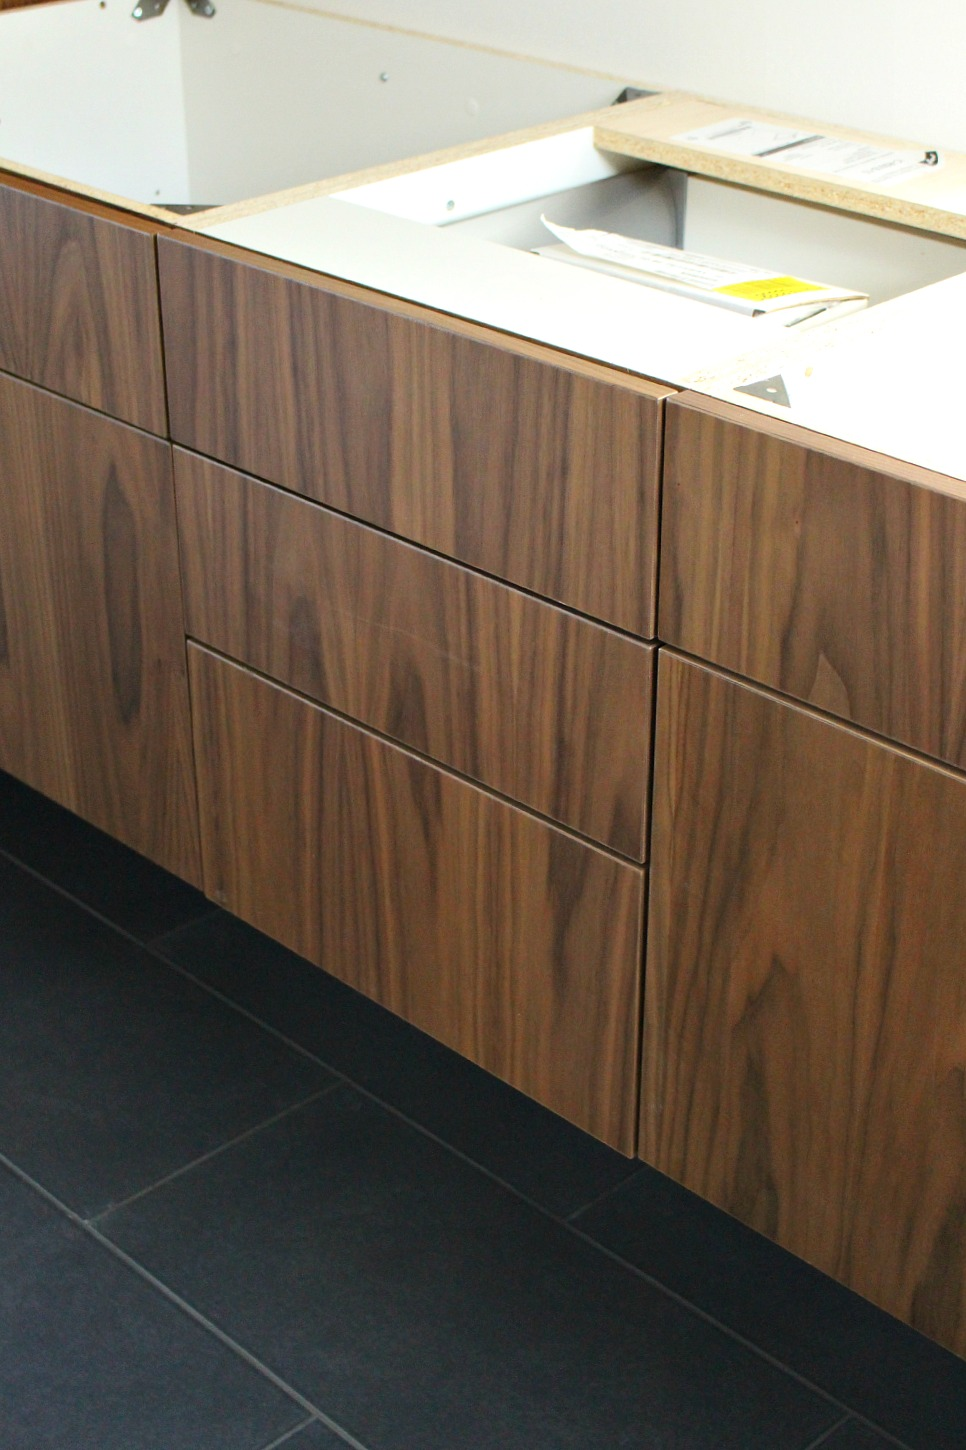 Walnut veneer cabinetry